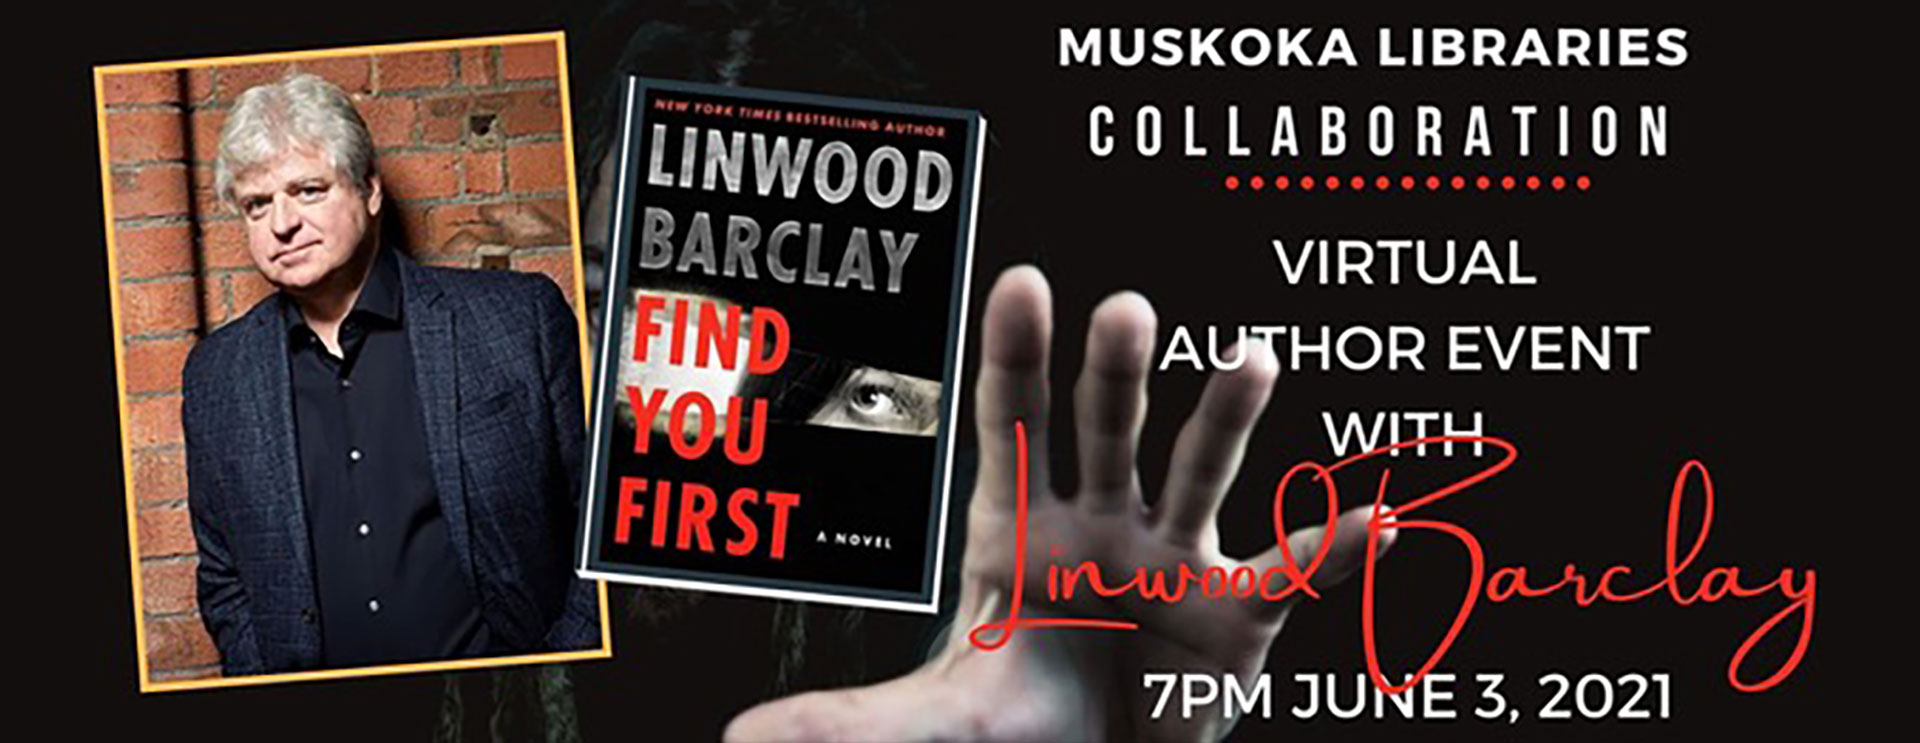 Authour Event Linwood Barclay